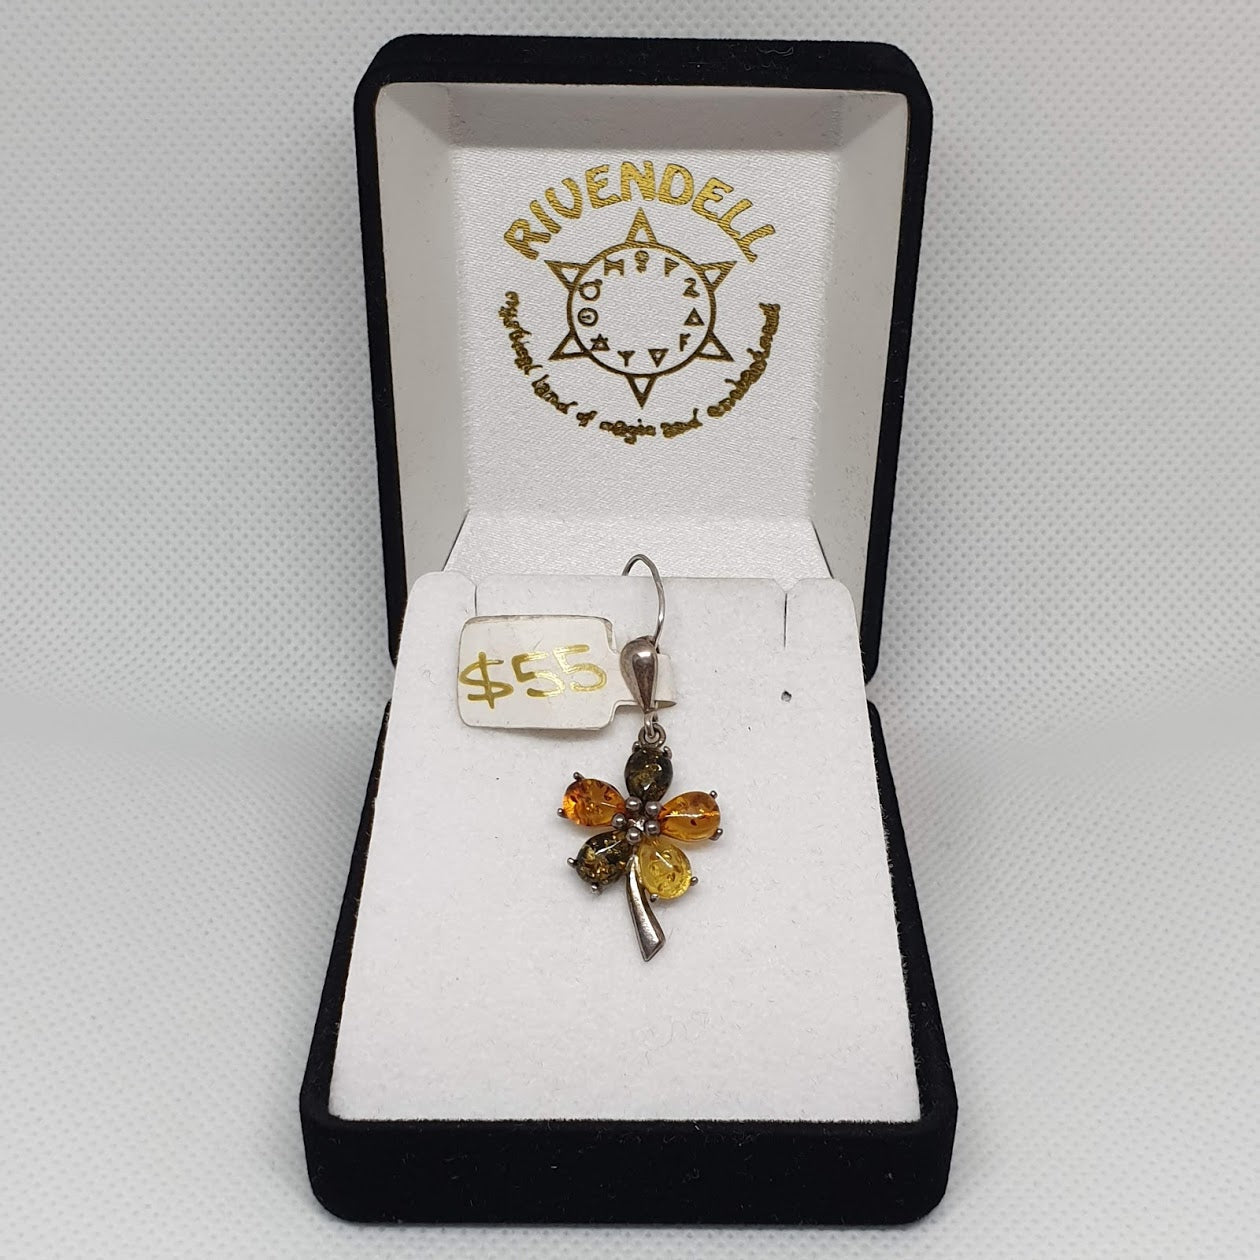 Multi-coloured Amber Flower 925 Sterling Silver Pendant - Rivendell Shop NZ